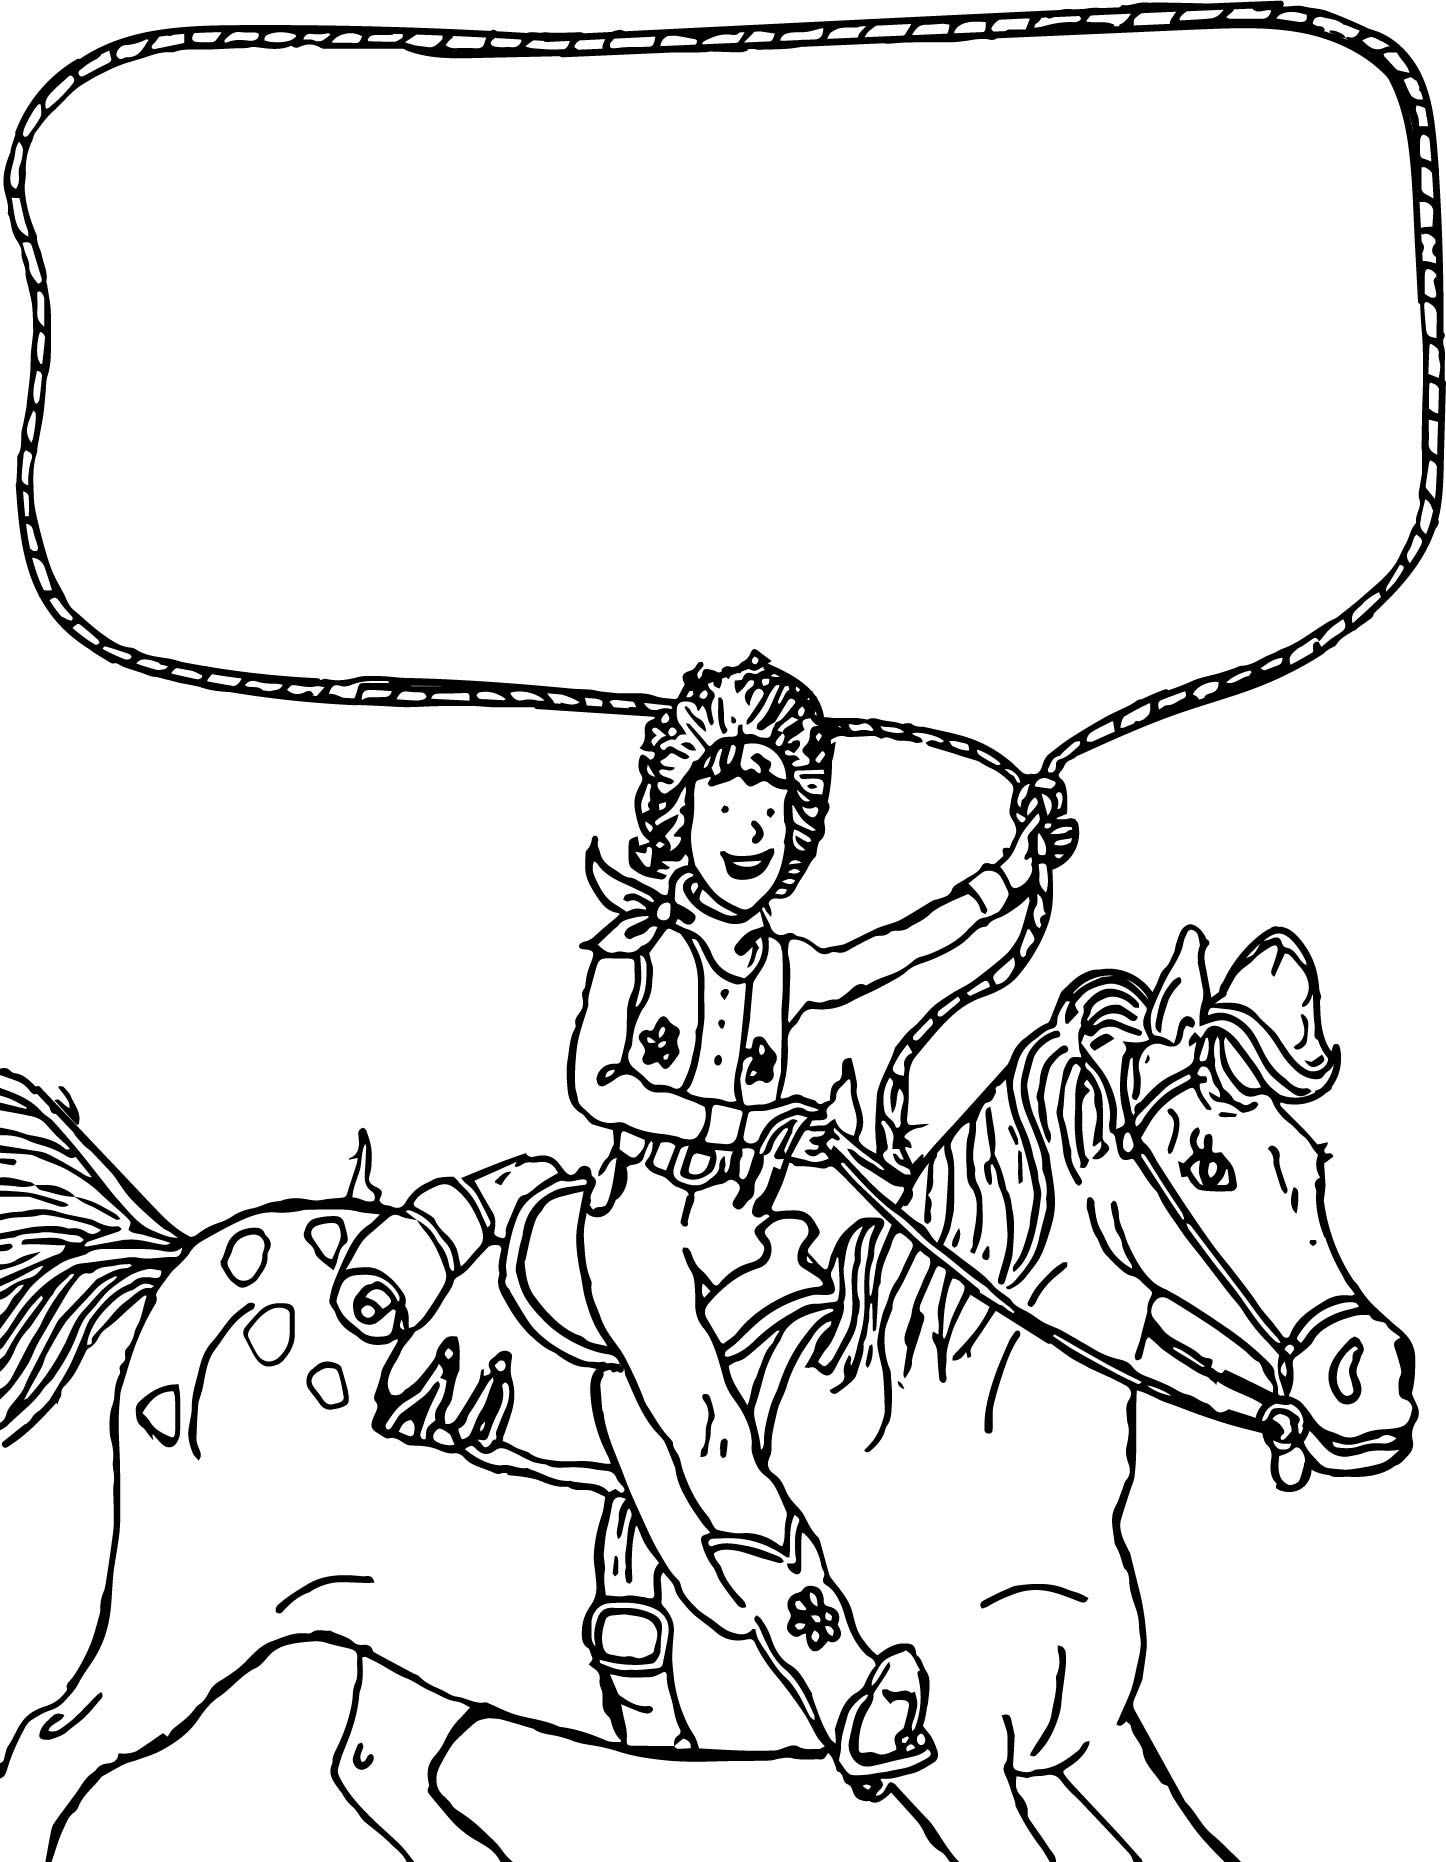 Uncategorized Amelia Bedelia Coloring Pages go west amelia bedelia on the horse coloring page wecoloringpage page